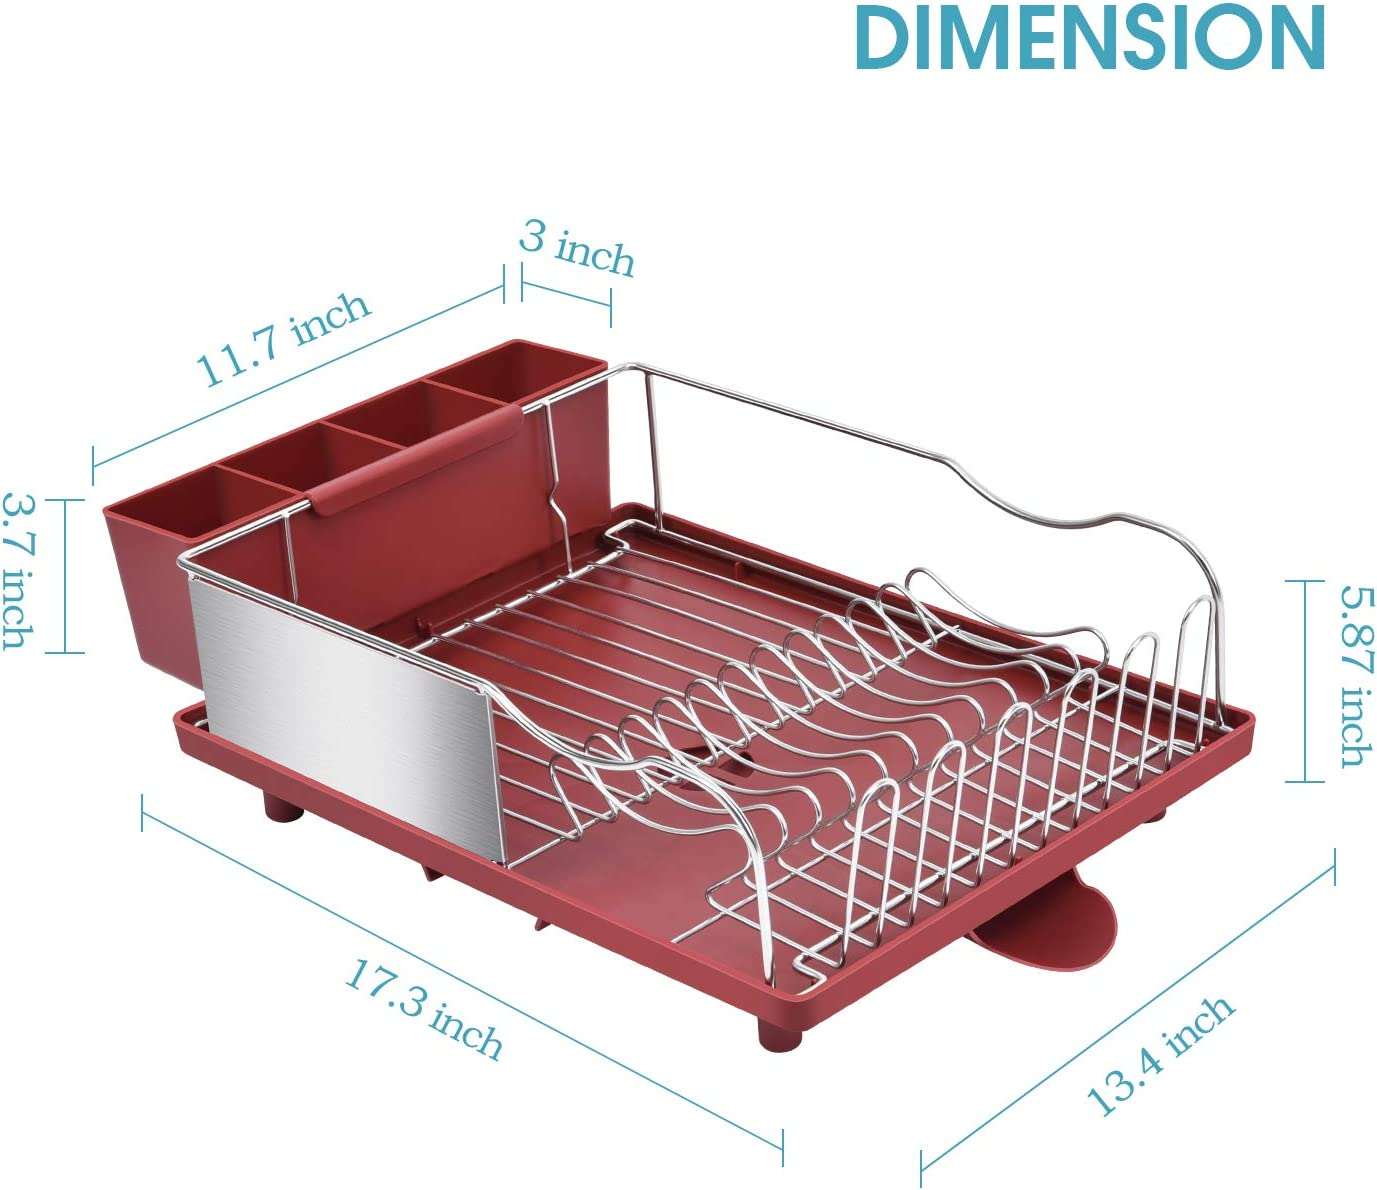 Removable /& Large 4 Compartment Utensil Holder for Kitchen Countertop Dish Rack with Anti-Rust Frame Black TOOLF Stainless Steel Dish Drying Rack Optional 2 Direction Spout Drain Board Design